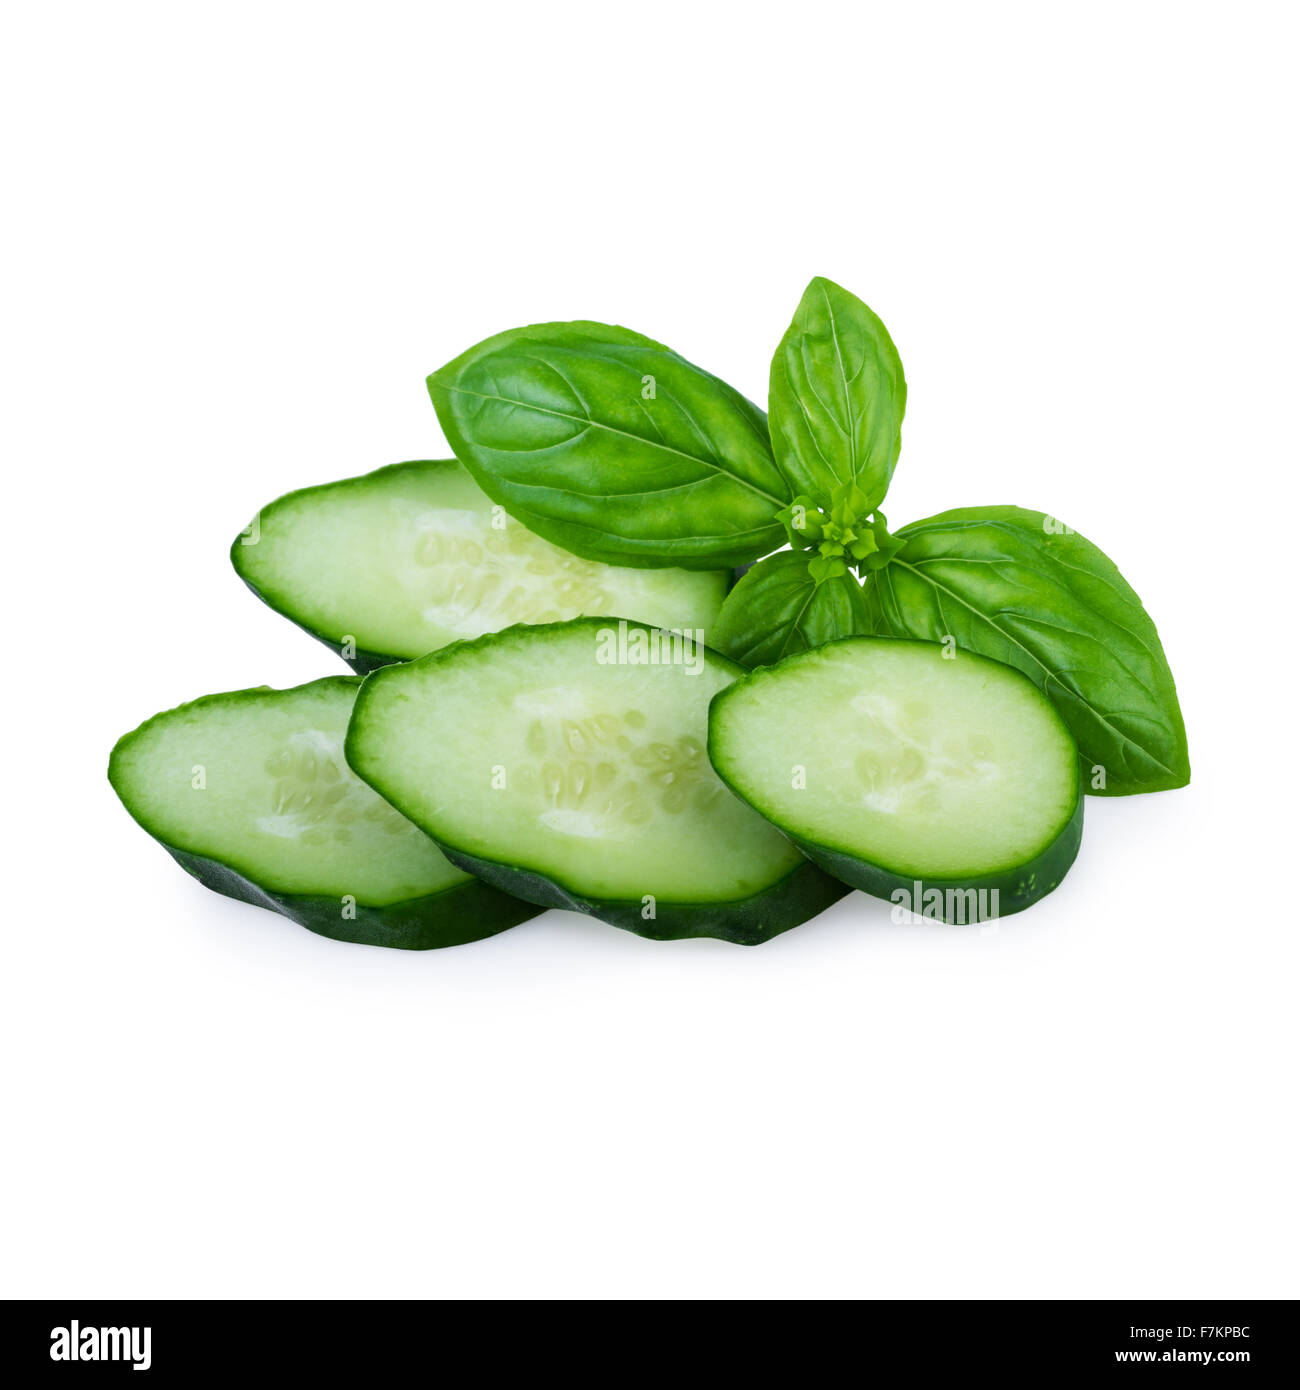 Cucumbers Slices Isolated on White - Stock Image